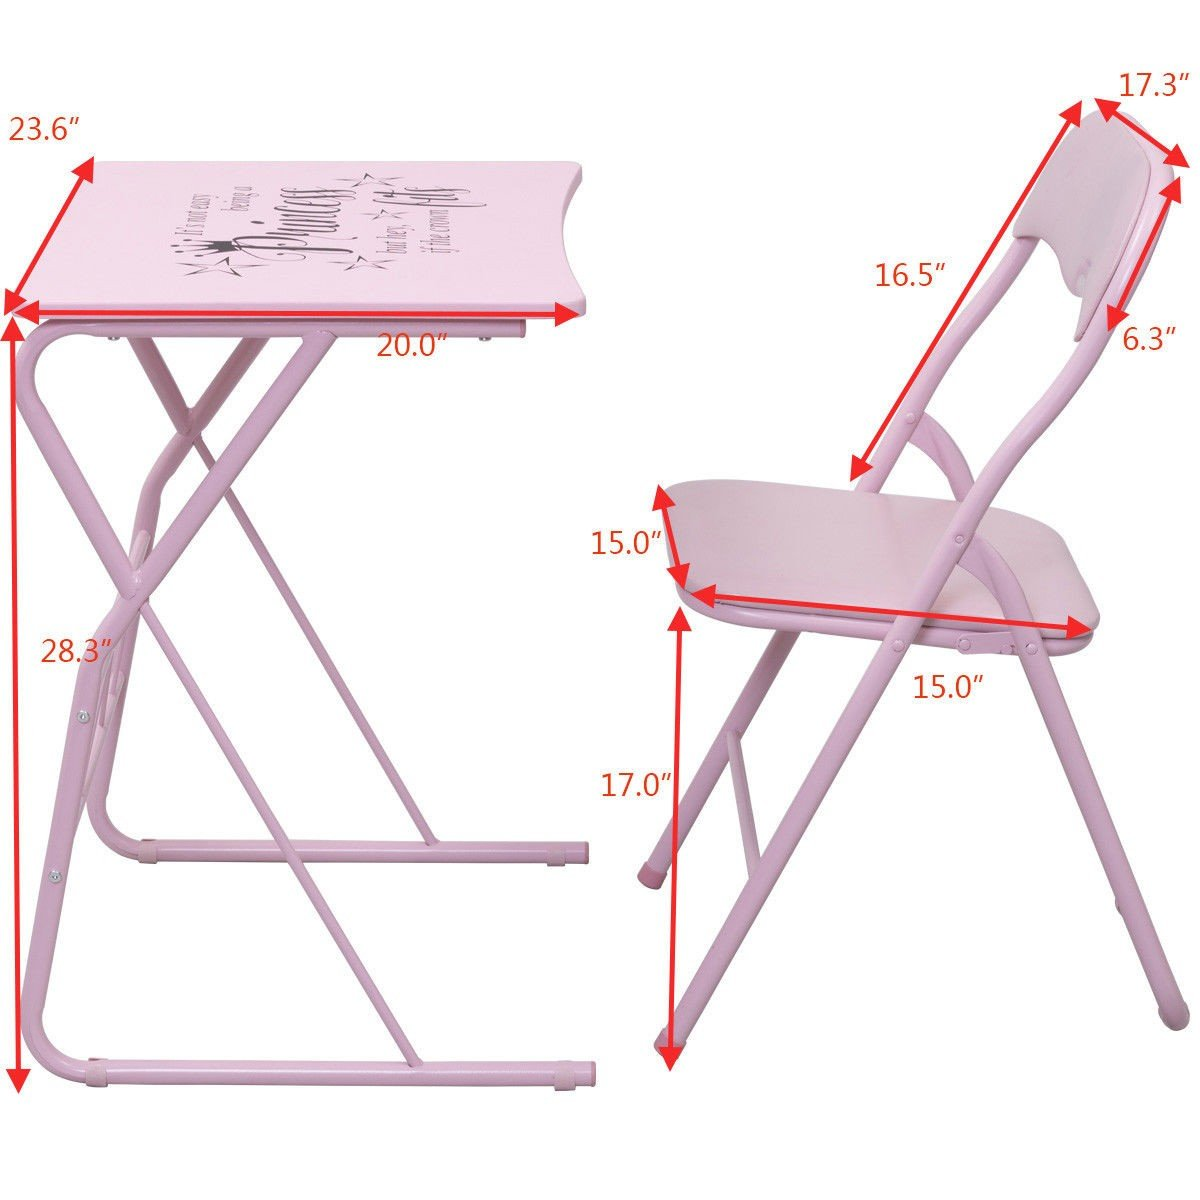 Student Folding Study Writing Chair Table Set  sc 1 st  By Choice Products & Student Folding Study Writing Chair Table Set \u2013 By Choice Products